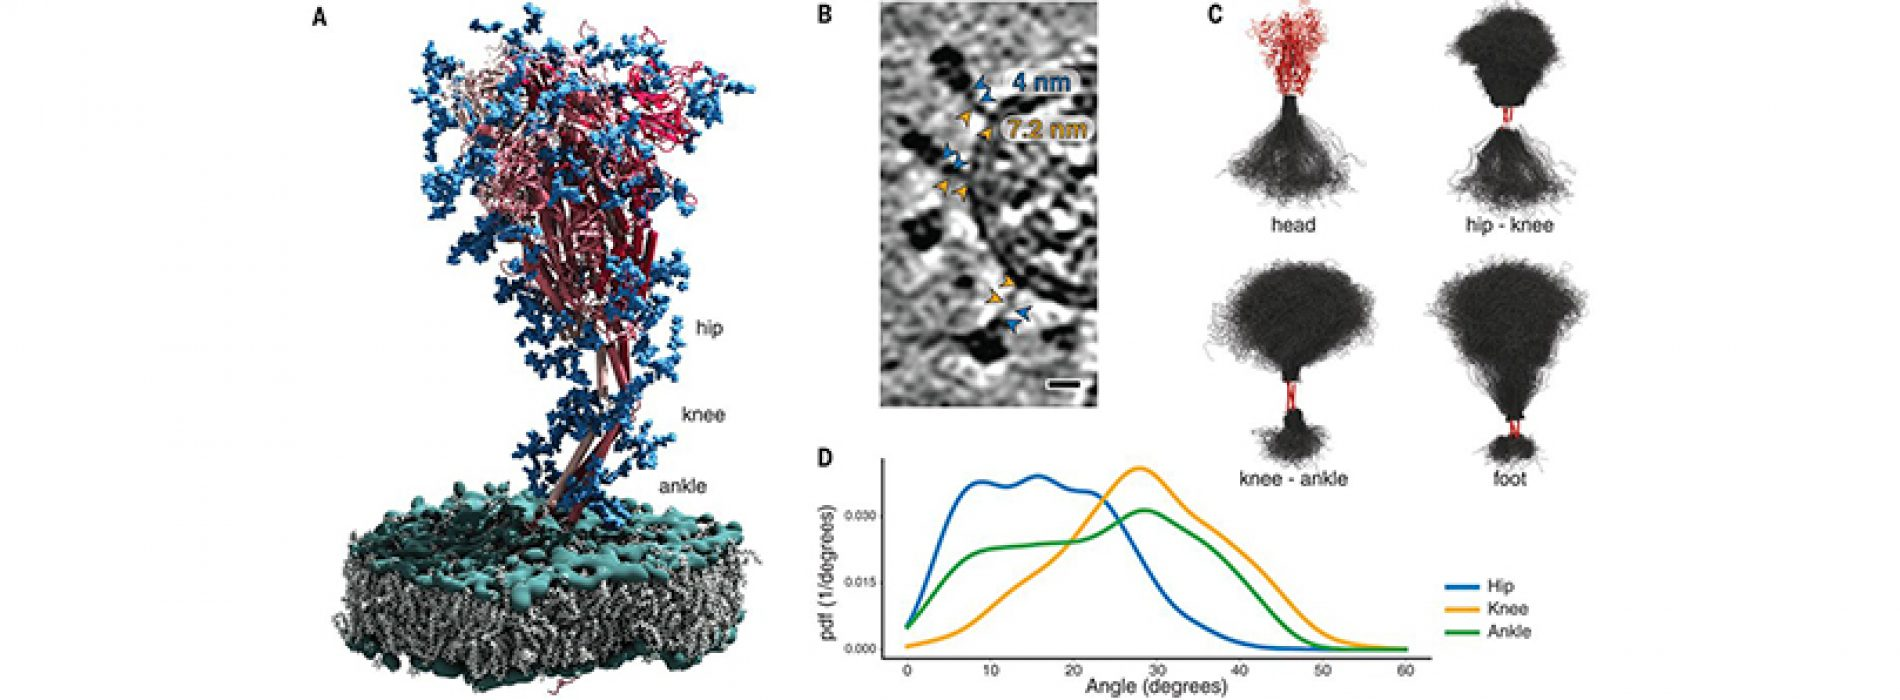 """Structural on-site analysis of SARS-CoV-2 protein S reveals the existence of """"hinges"""" that allow flexibility"""